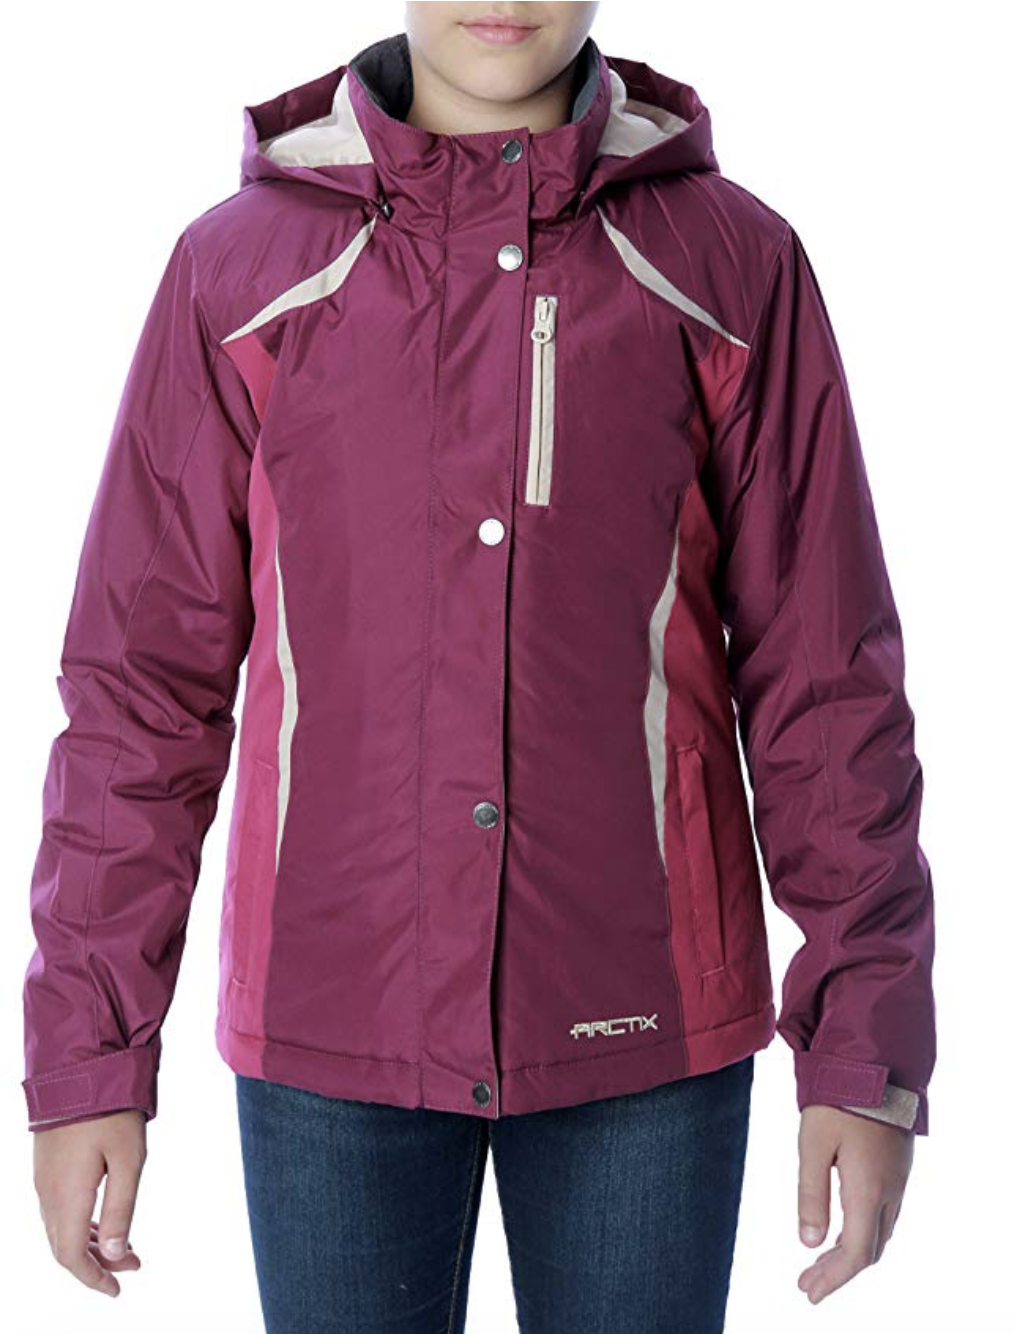 Girl's Frost Insulated Ski Jacket by Arctix - Under $100